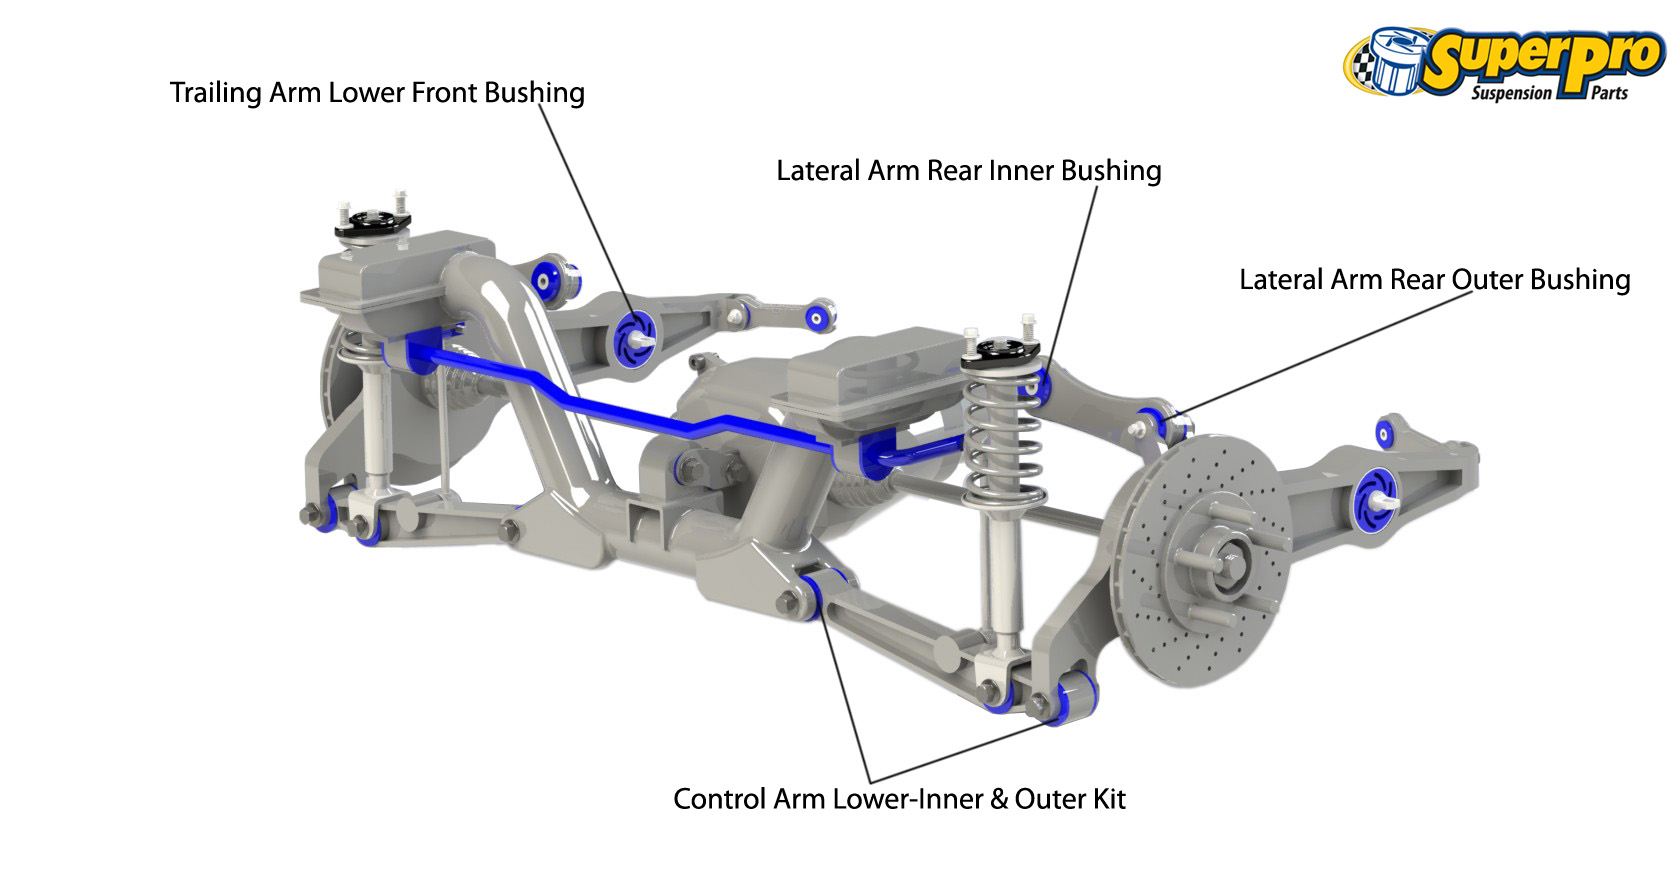 Superpro Suspension Parts And Poly Bushings For Honda Cr V Rd Mk1 1999 Civic Rear Sway Bar Diagram 4wd Wagon 1995